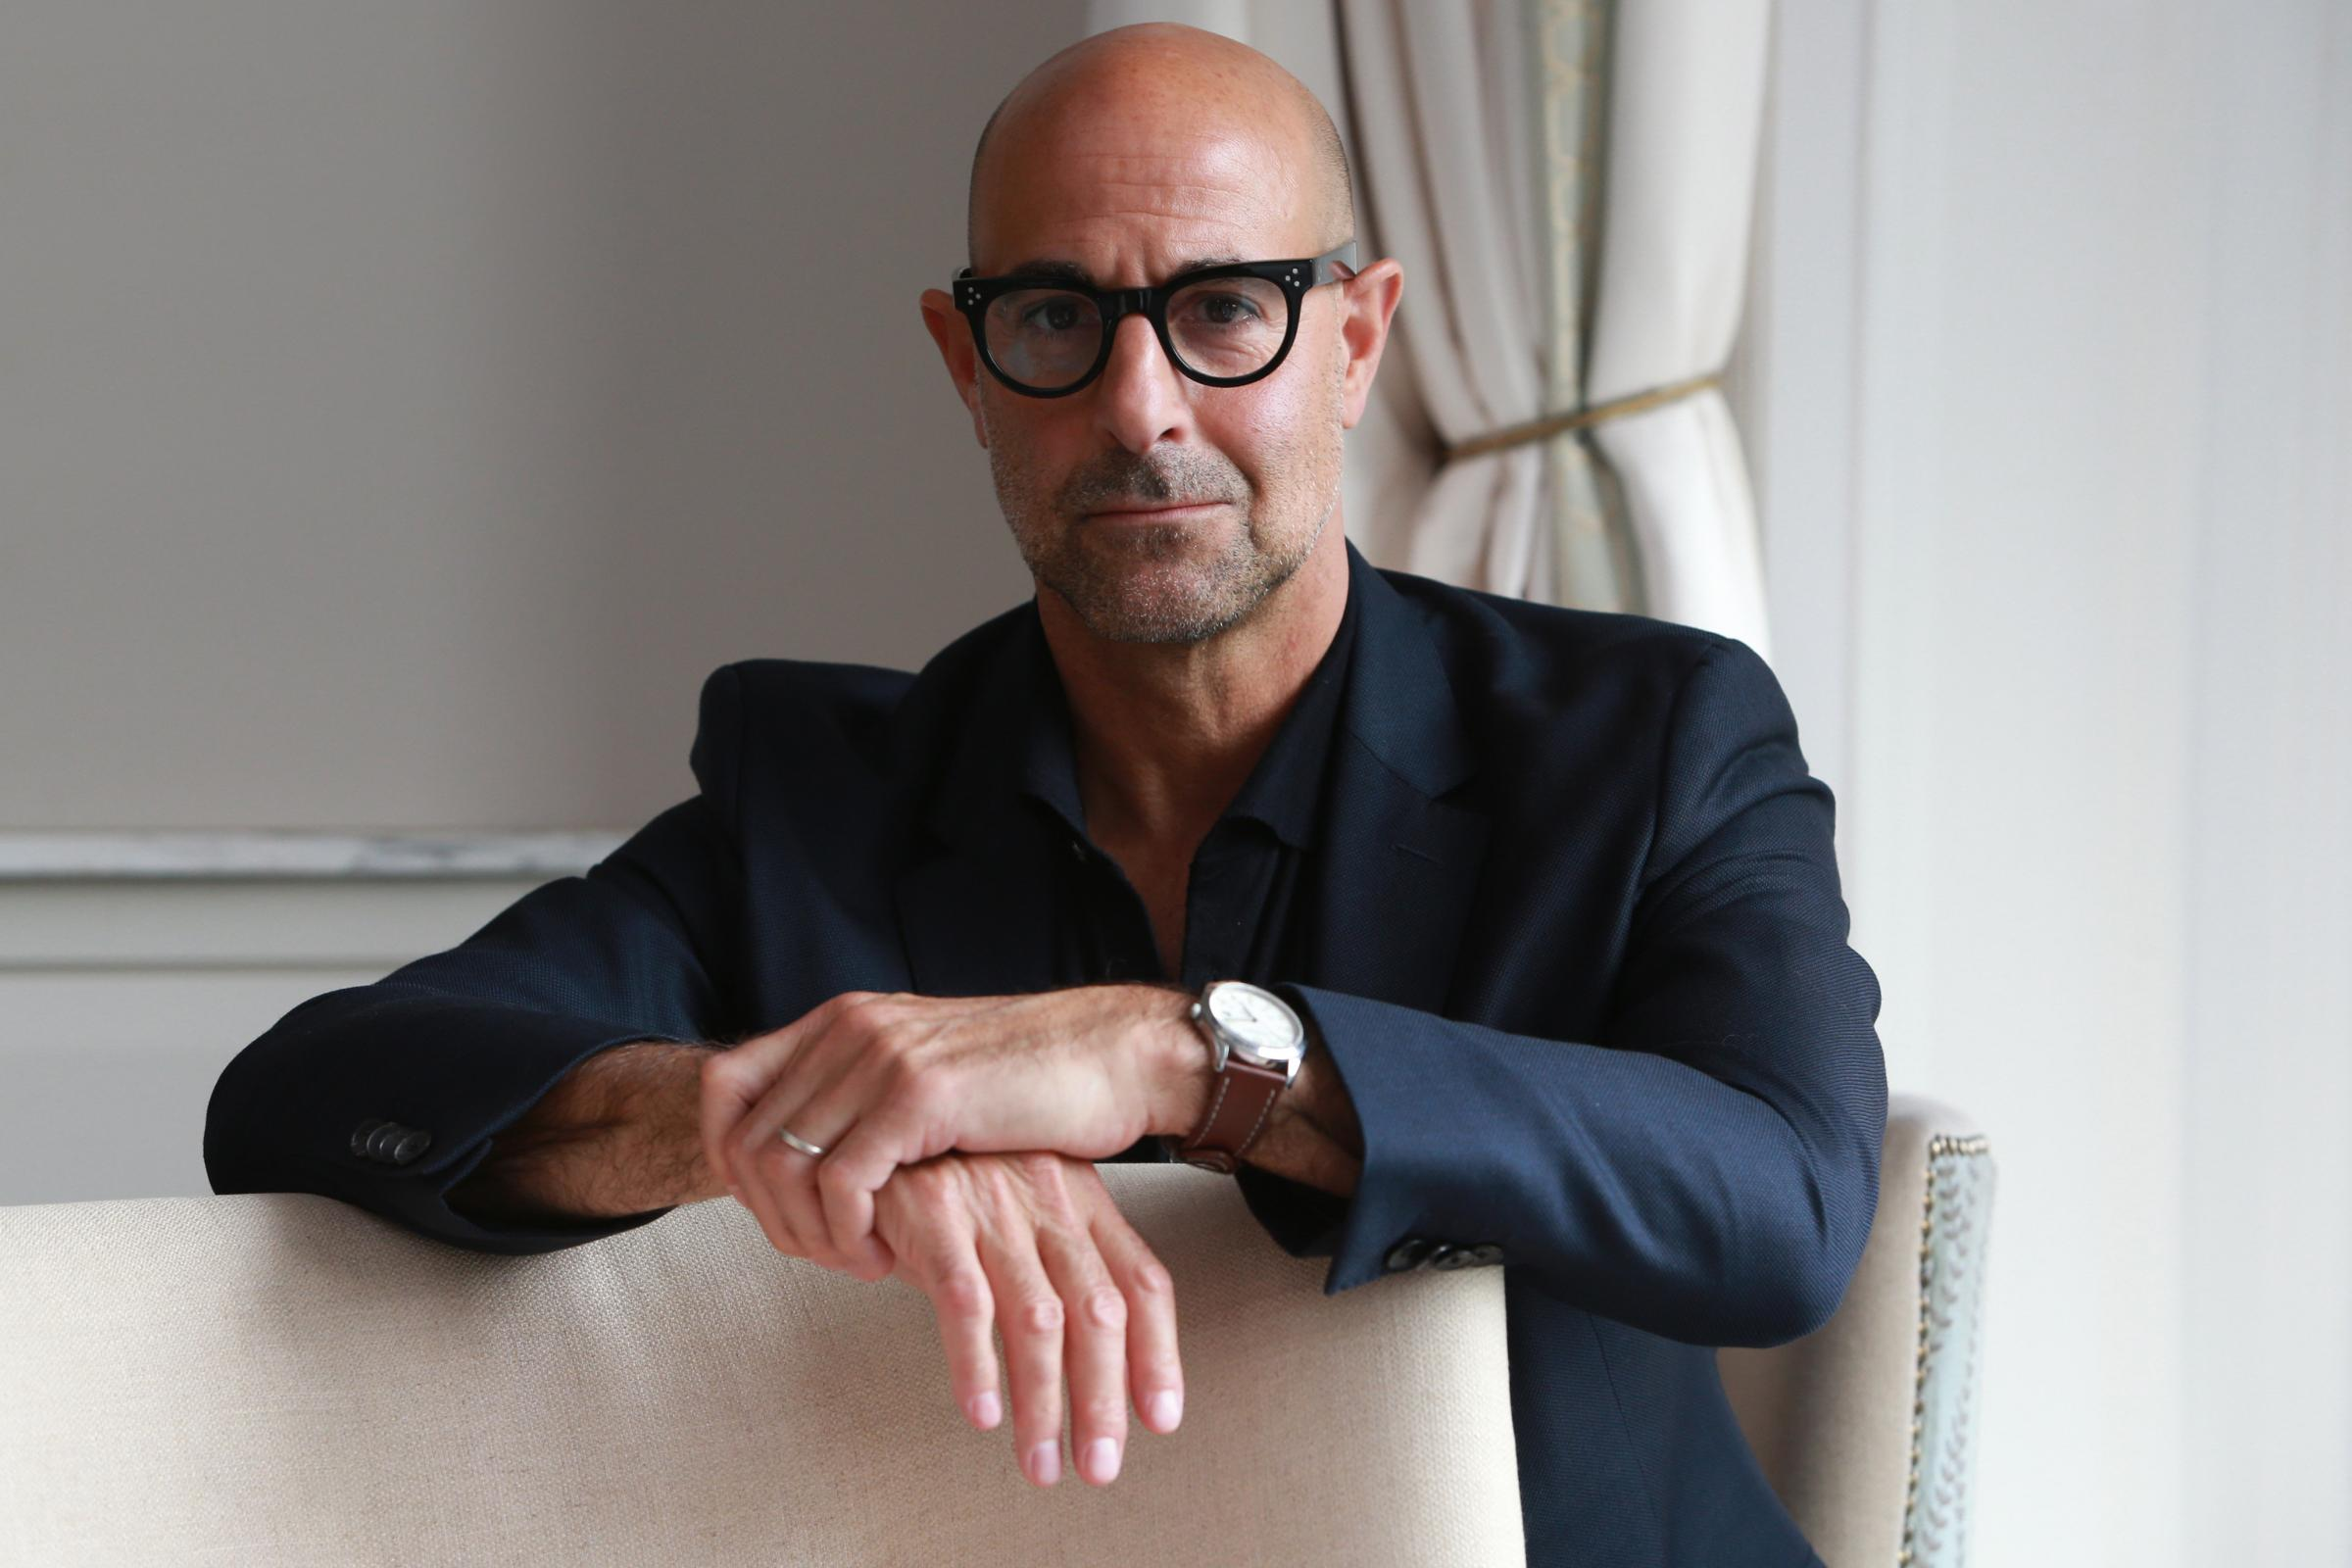 HeraldScotland:   Stanley Tucci on his new film Final Portrait, survivor guilt and becoming a father again (From HeraldScotland) 6725005